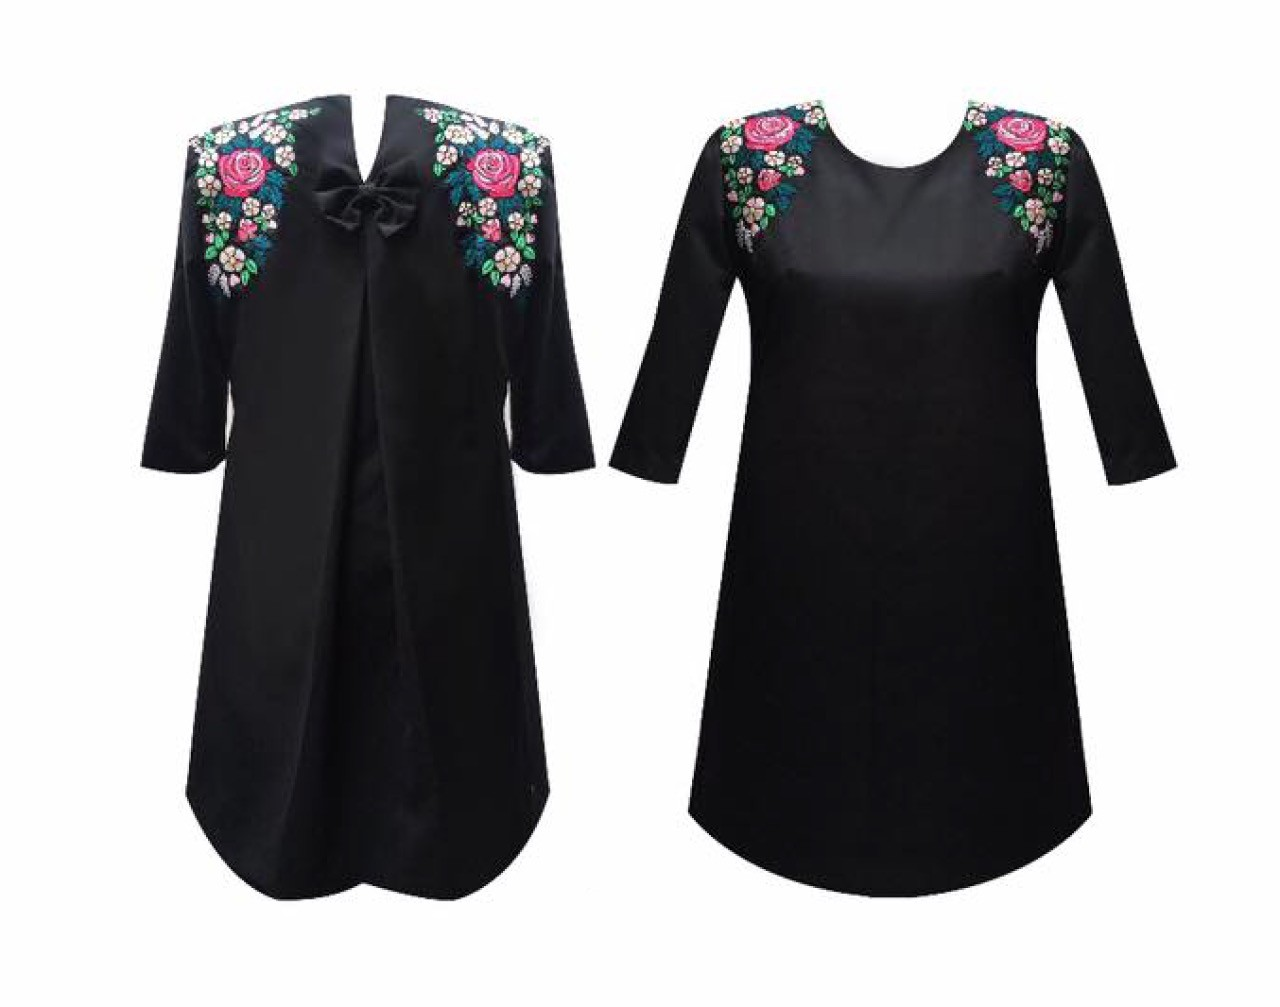 Florencia embroidered dress, Size M